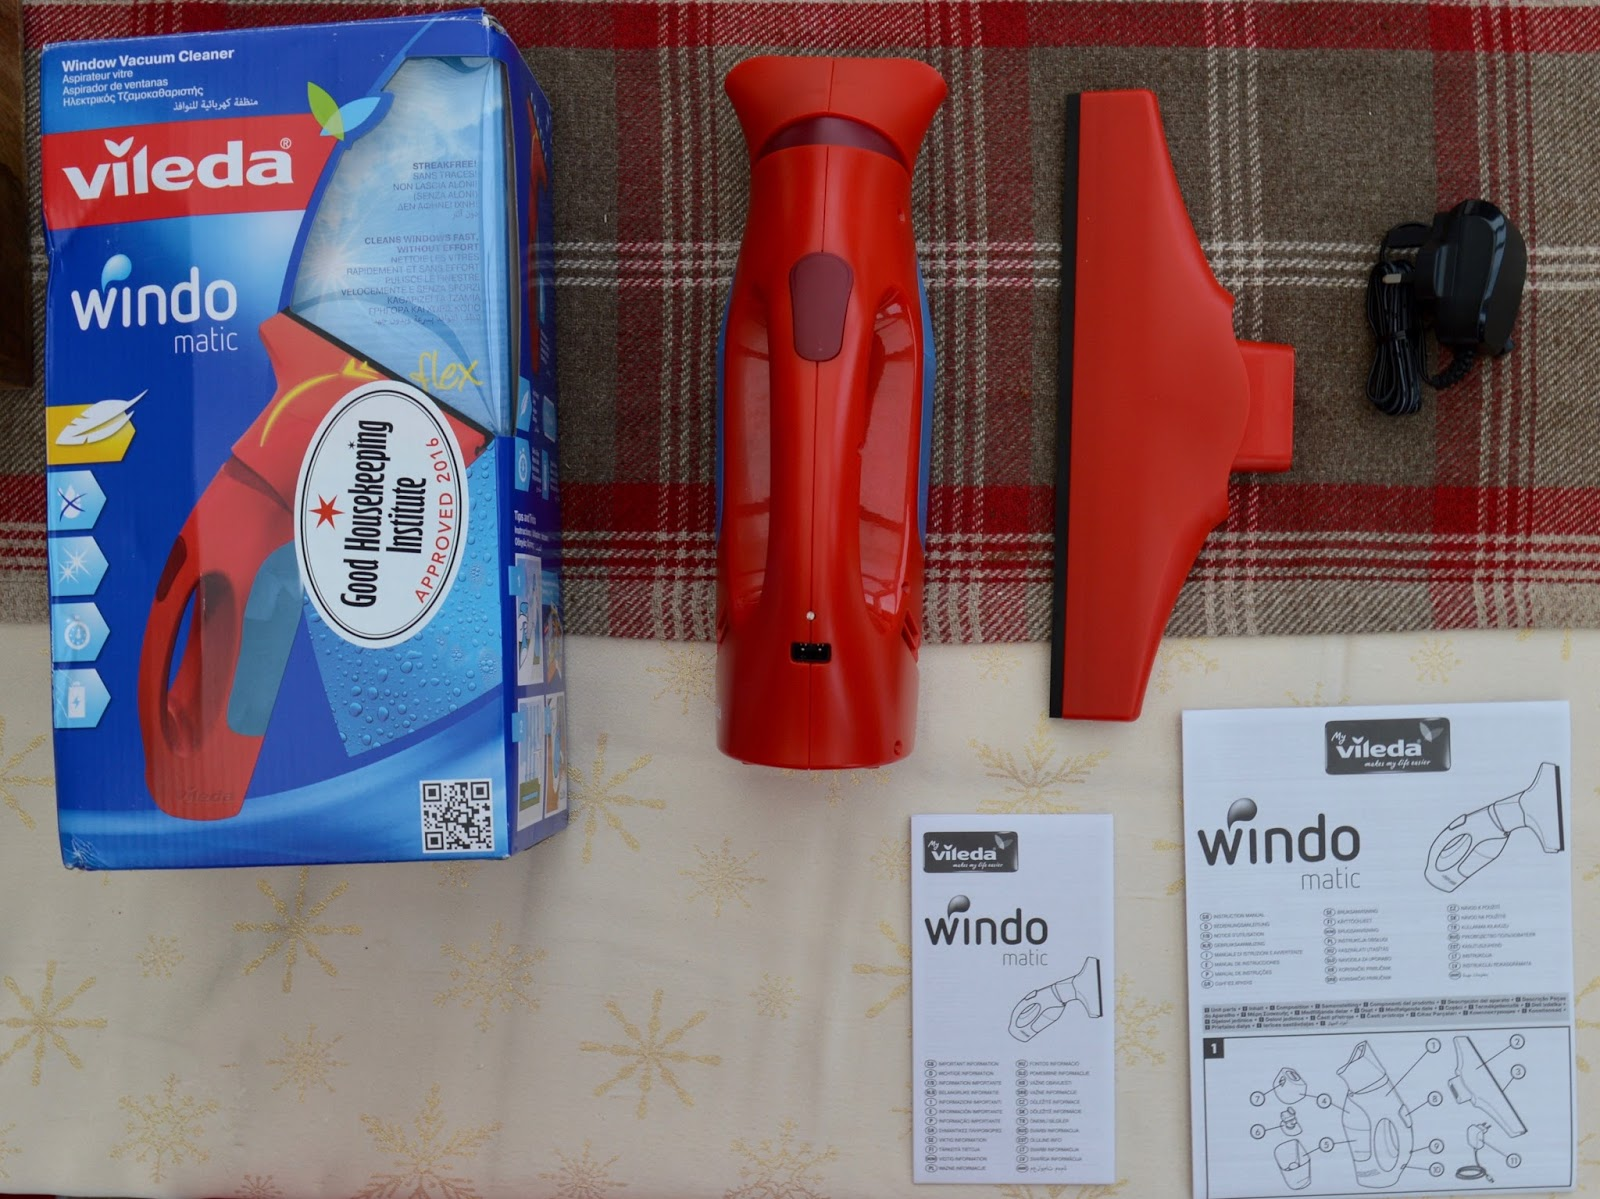 Vileda Windomatic Window Vacuum Review | How to achieve streak free windows - what's in the box